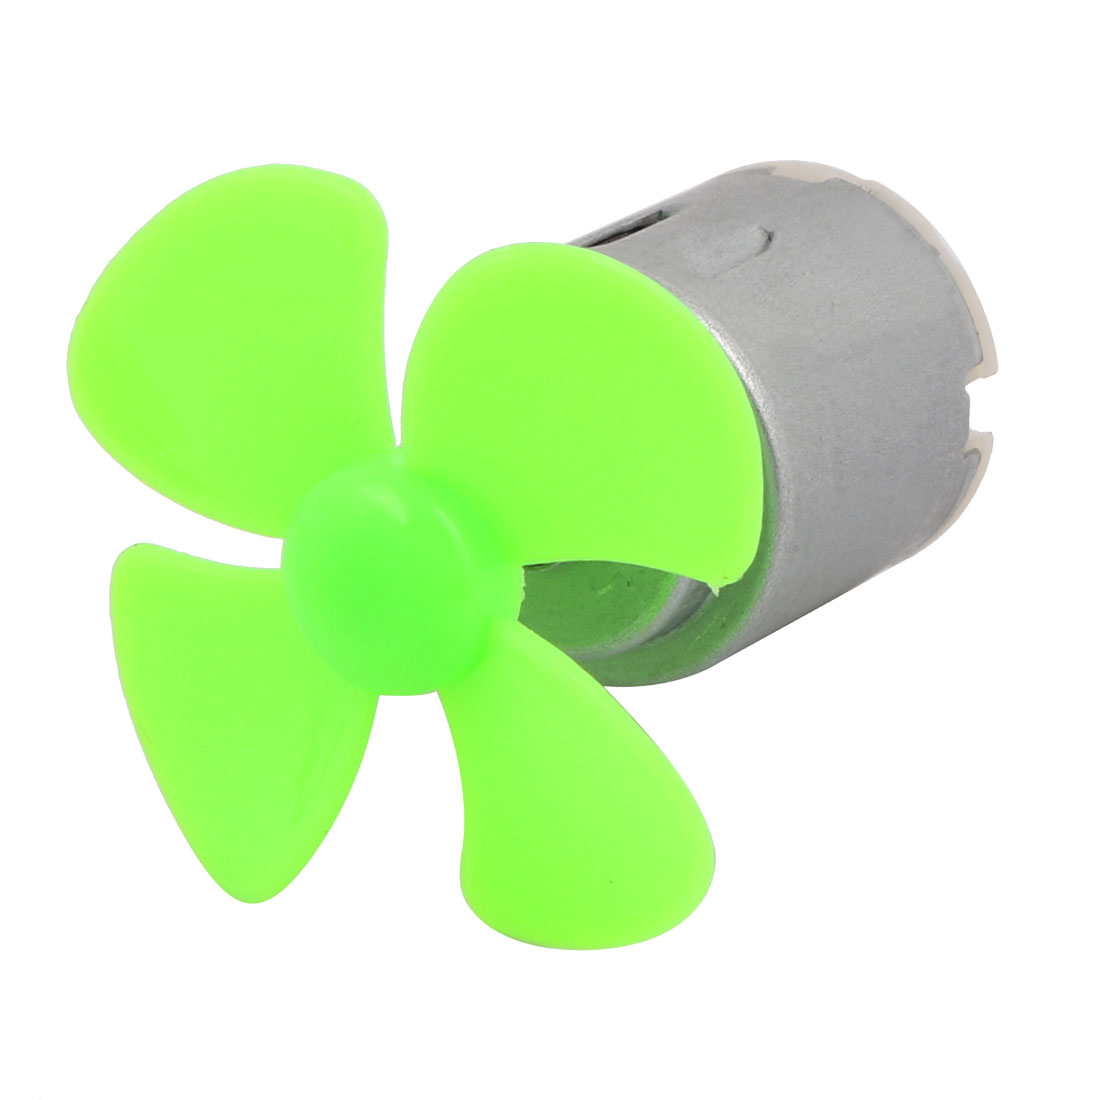 DC 3V 0.13A 16500RPM Strong Force Motor 4 Vanes 40mm Green Propeller for RC Aircraft